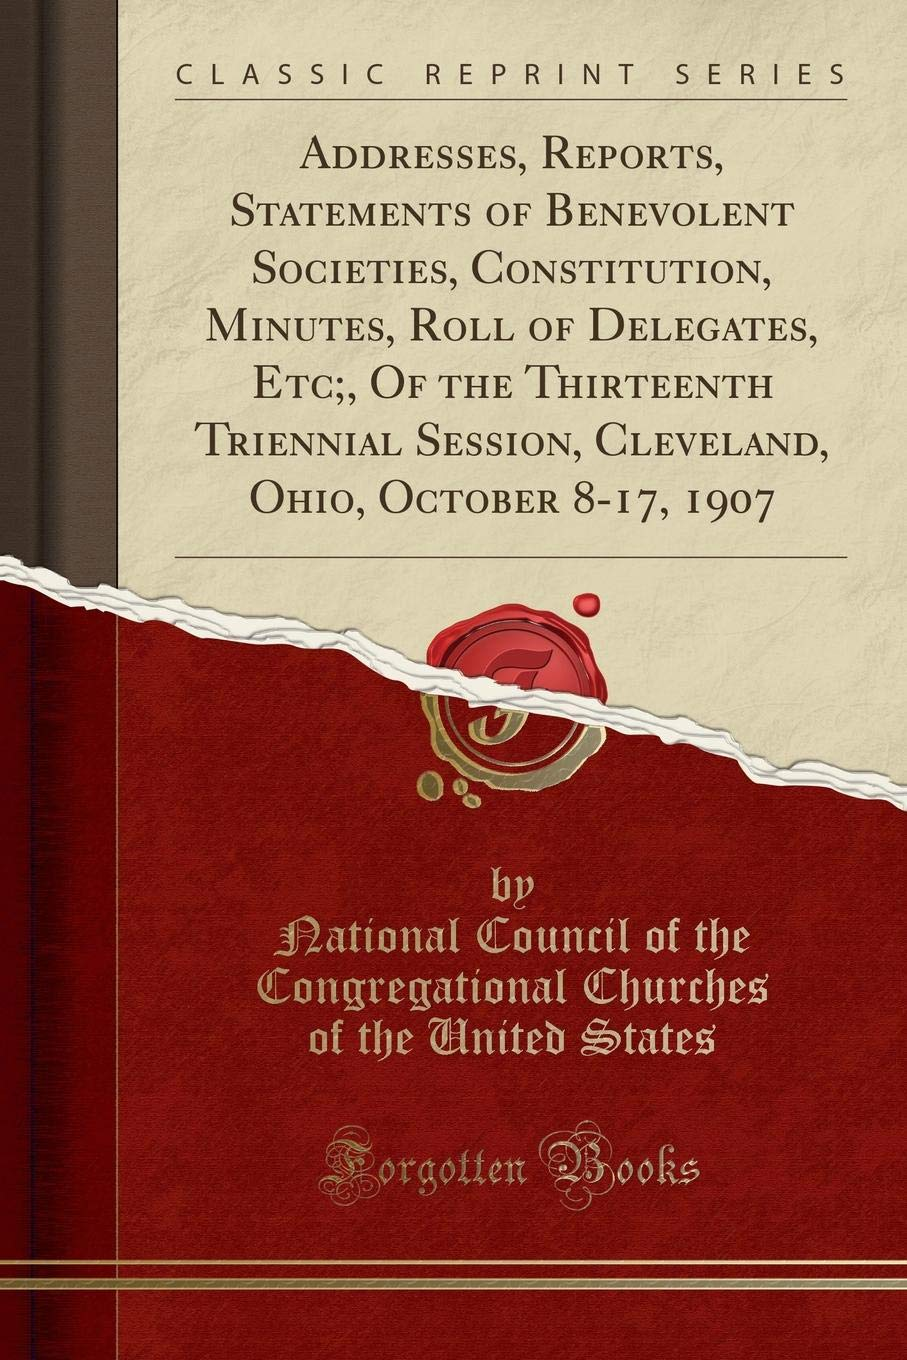 Read Online Addresses, Reports, Statements of Benevolent Societies, Constitution, Minutes, Roll of Delegates, Etc;, Of the Thirteenth Triennial Session, Cleveland, Ohio, October 8-17, 1907 (Classic Reprint) PDF